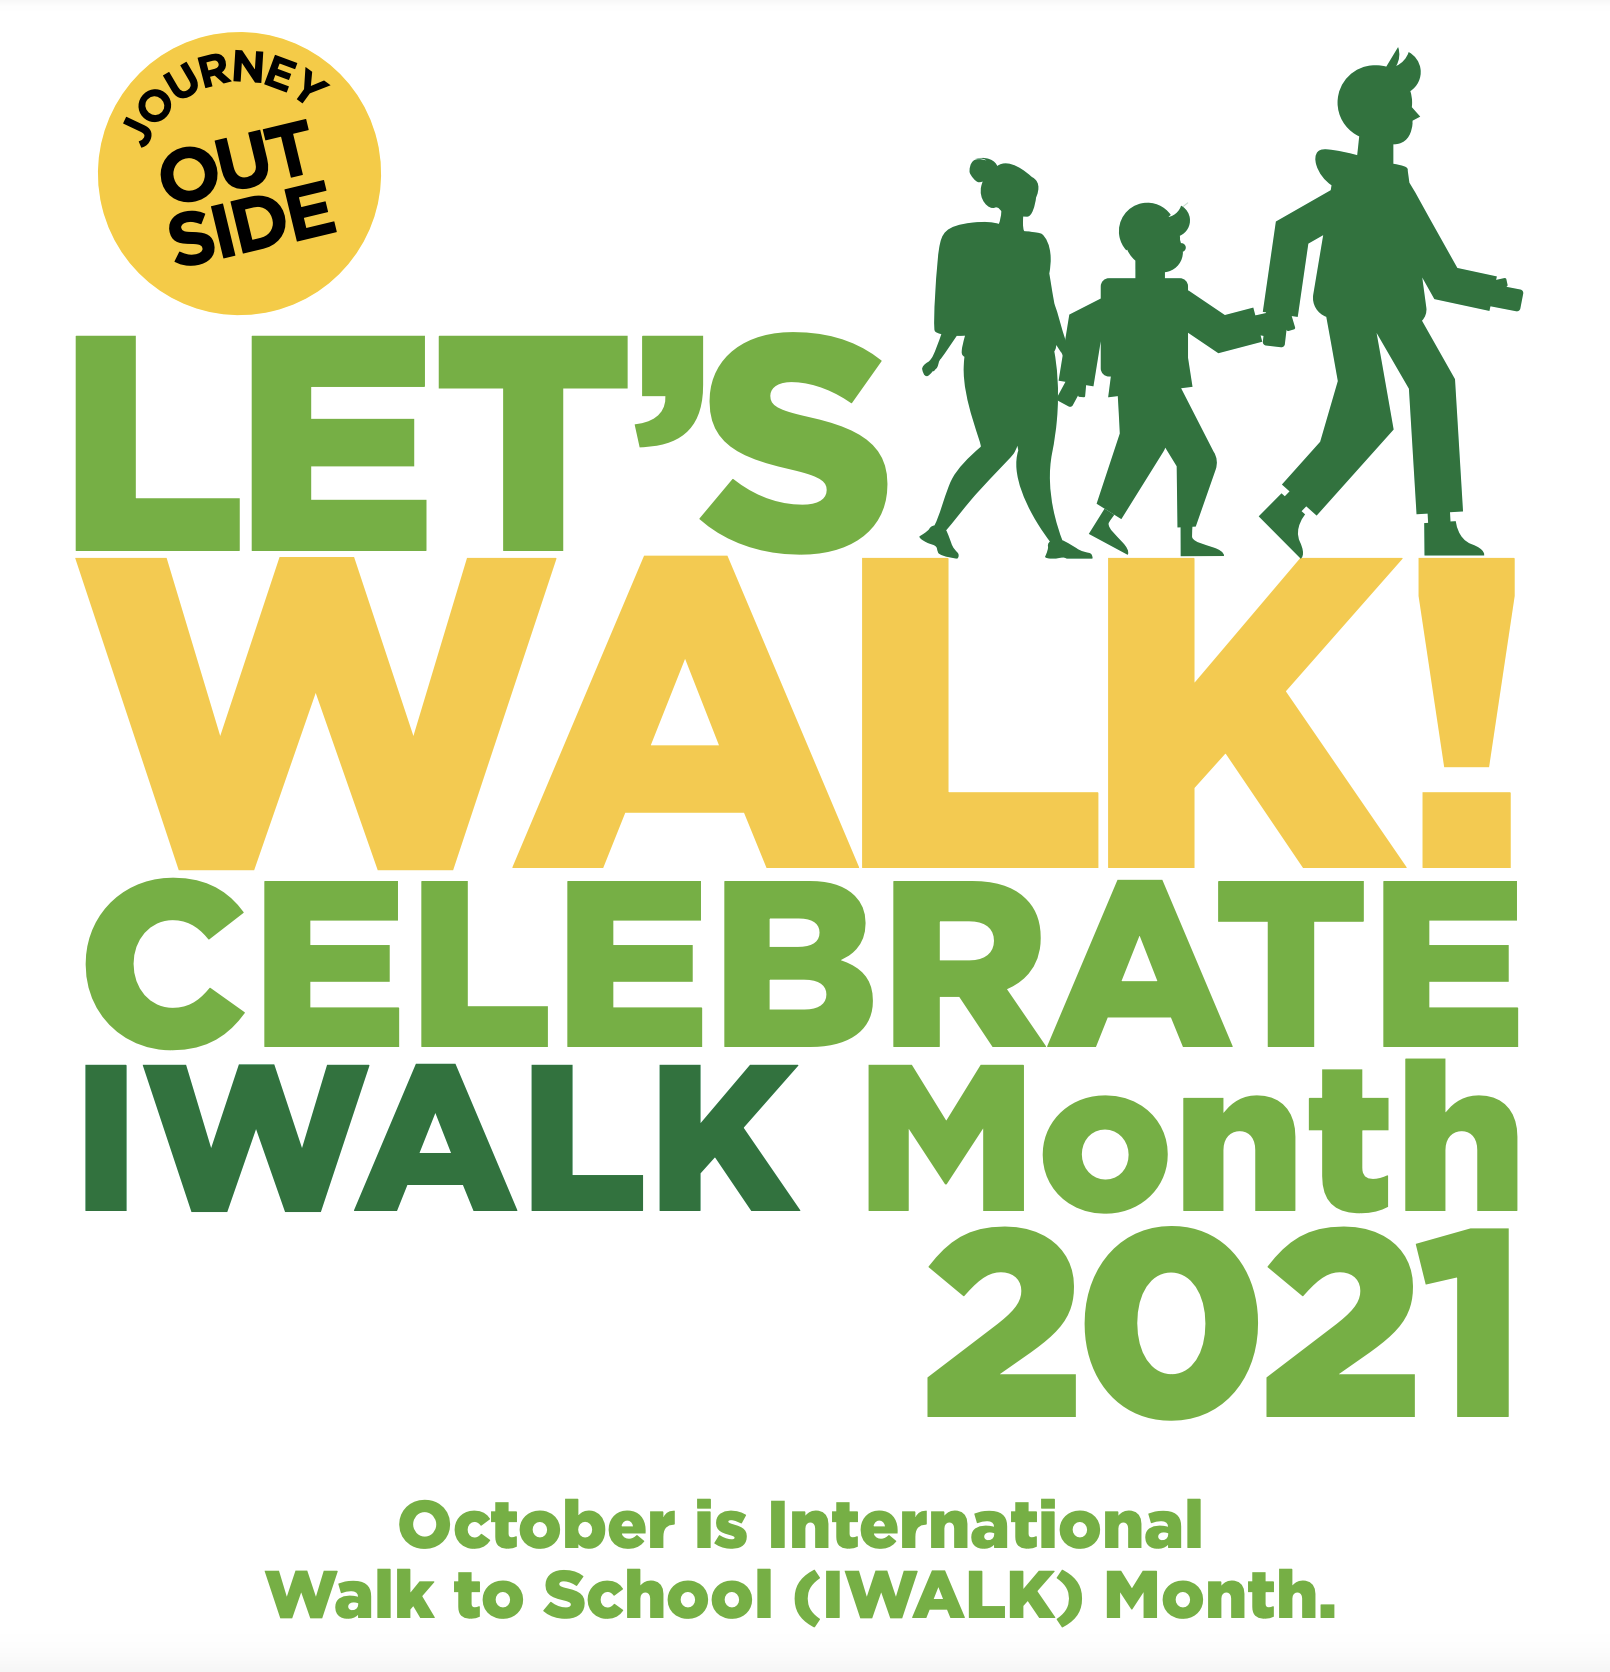 poster for walk to school month 2021